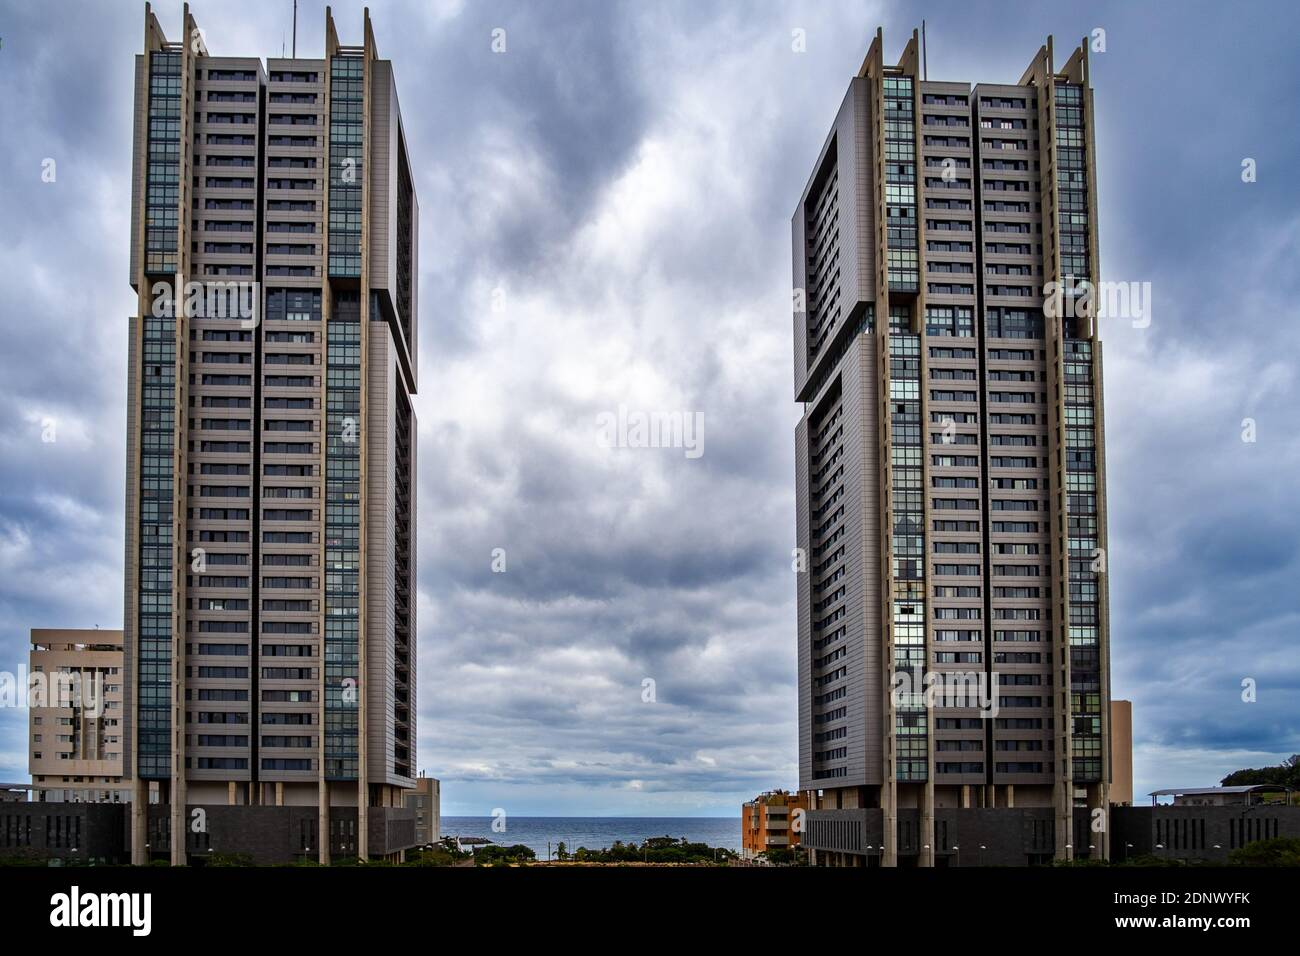 Low Angle View of Buildings Against Cloudy Sky Banque D'Images